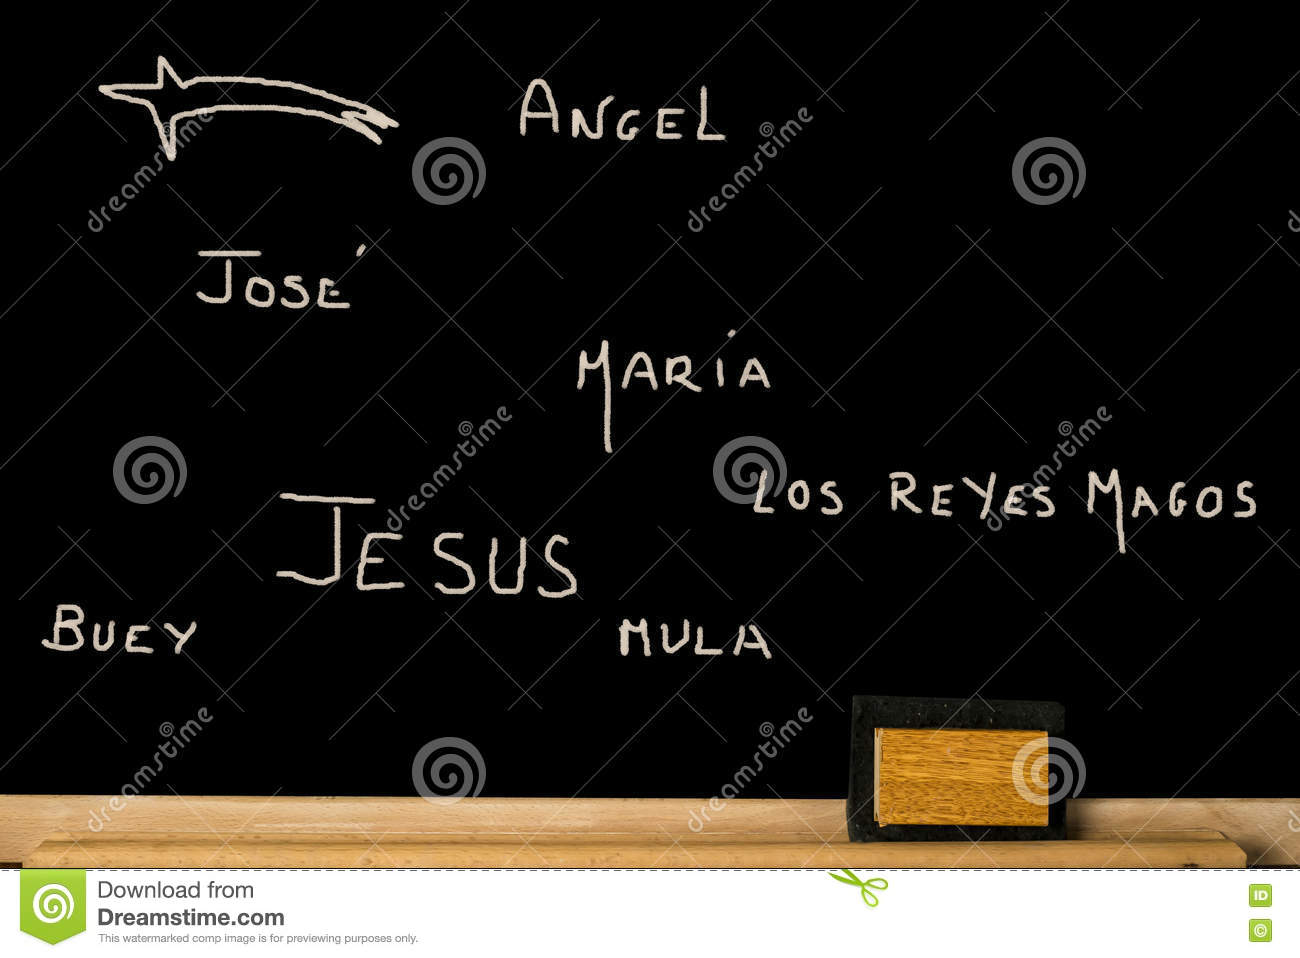 Concept Christmas Card In Spanish Language Stock Image - Image of ...